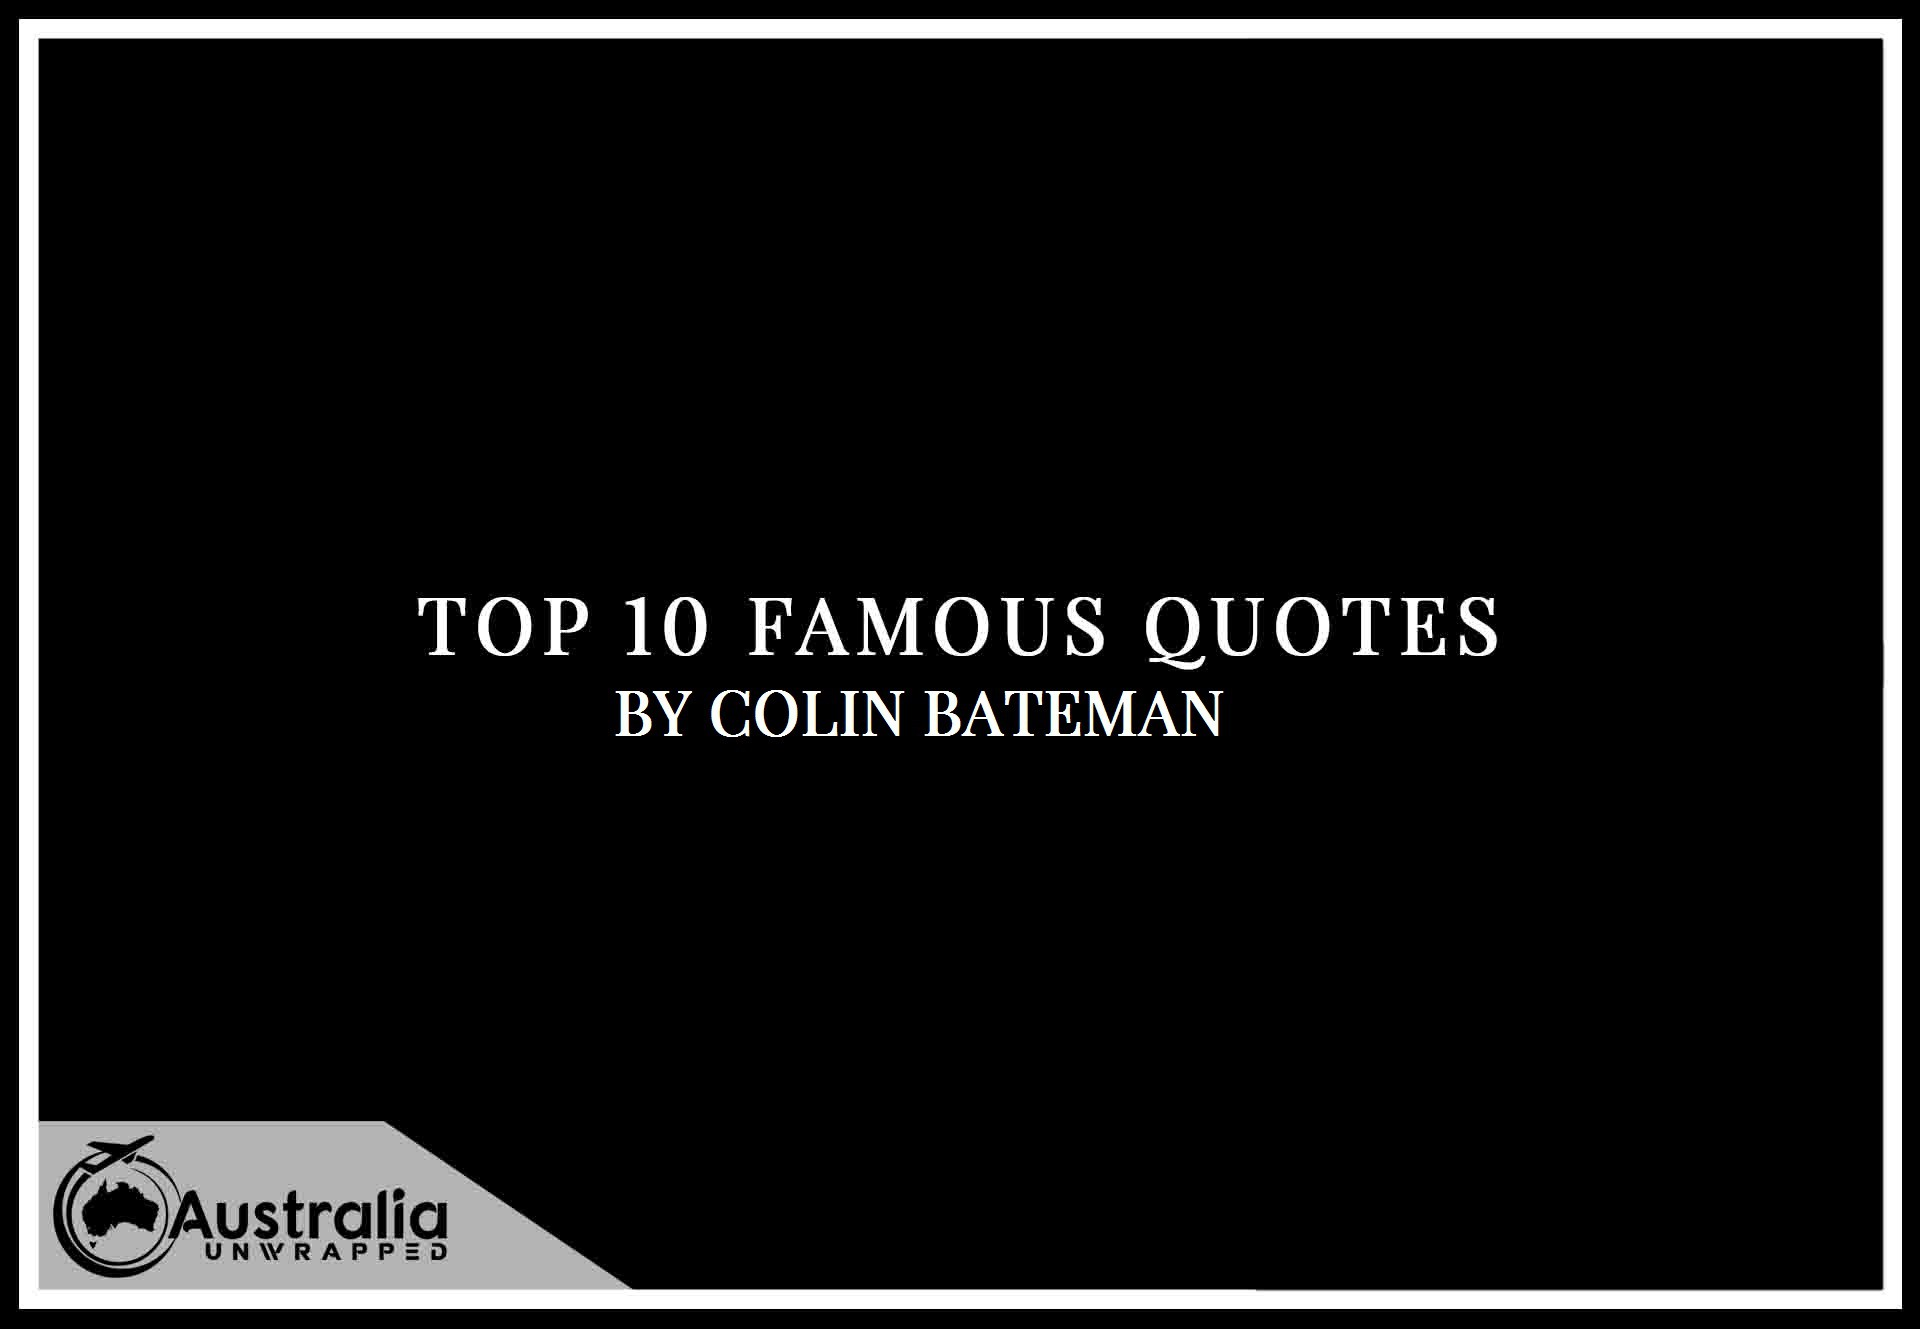 Colin Bateman's Top 10 Popular and Famous Quotes